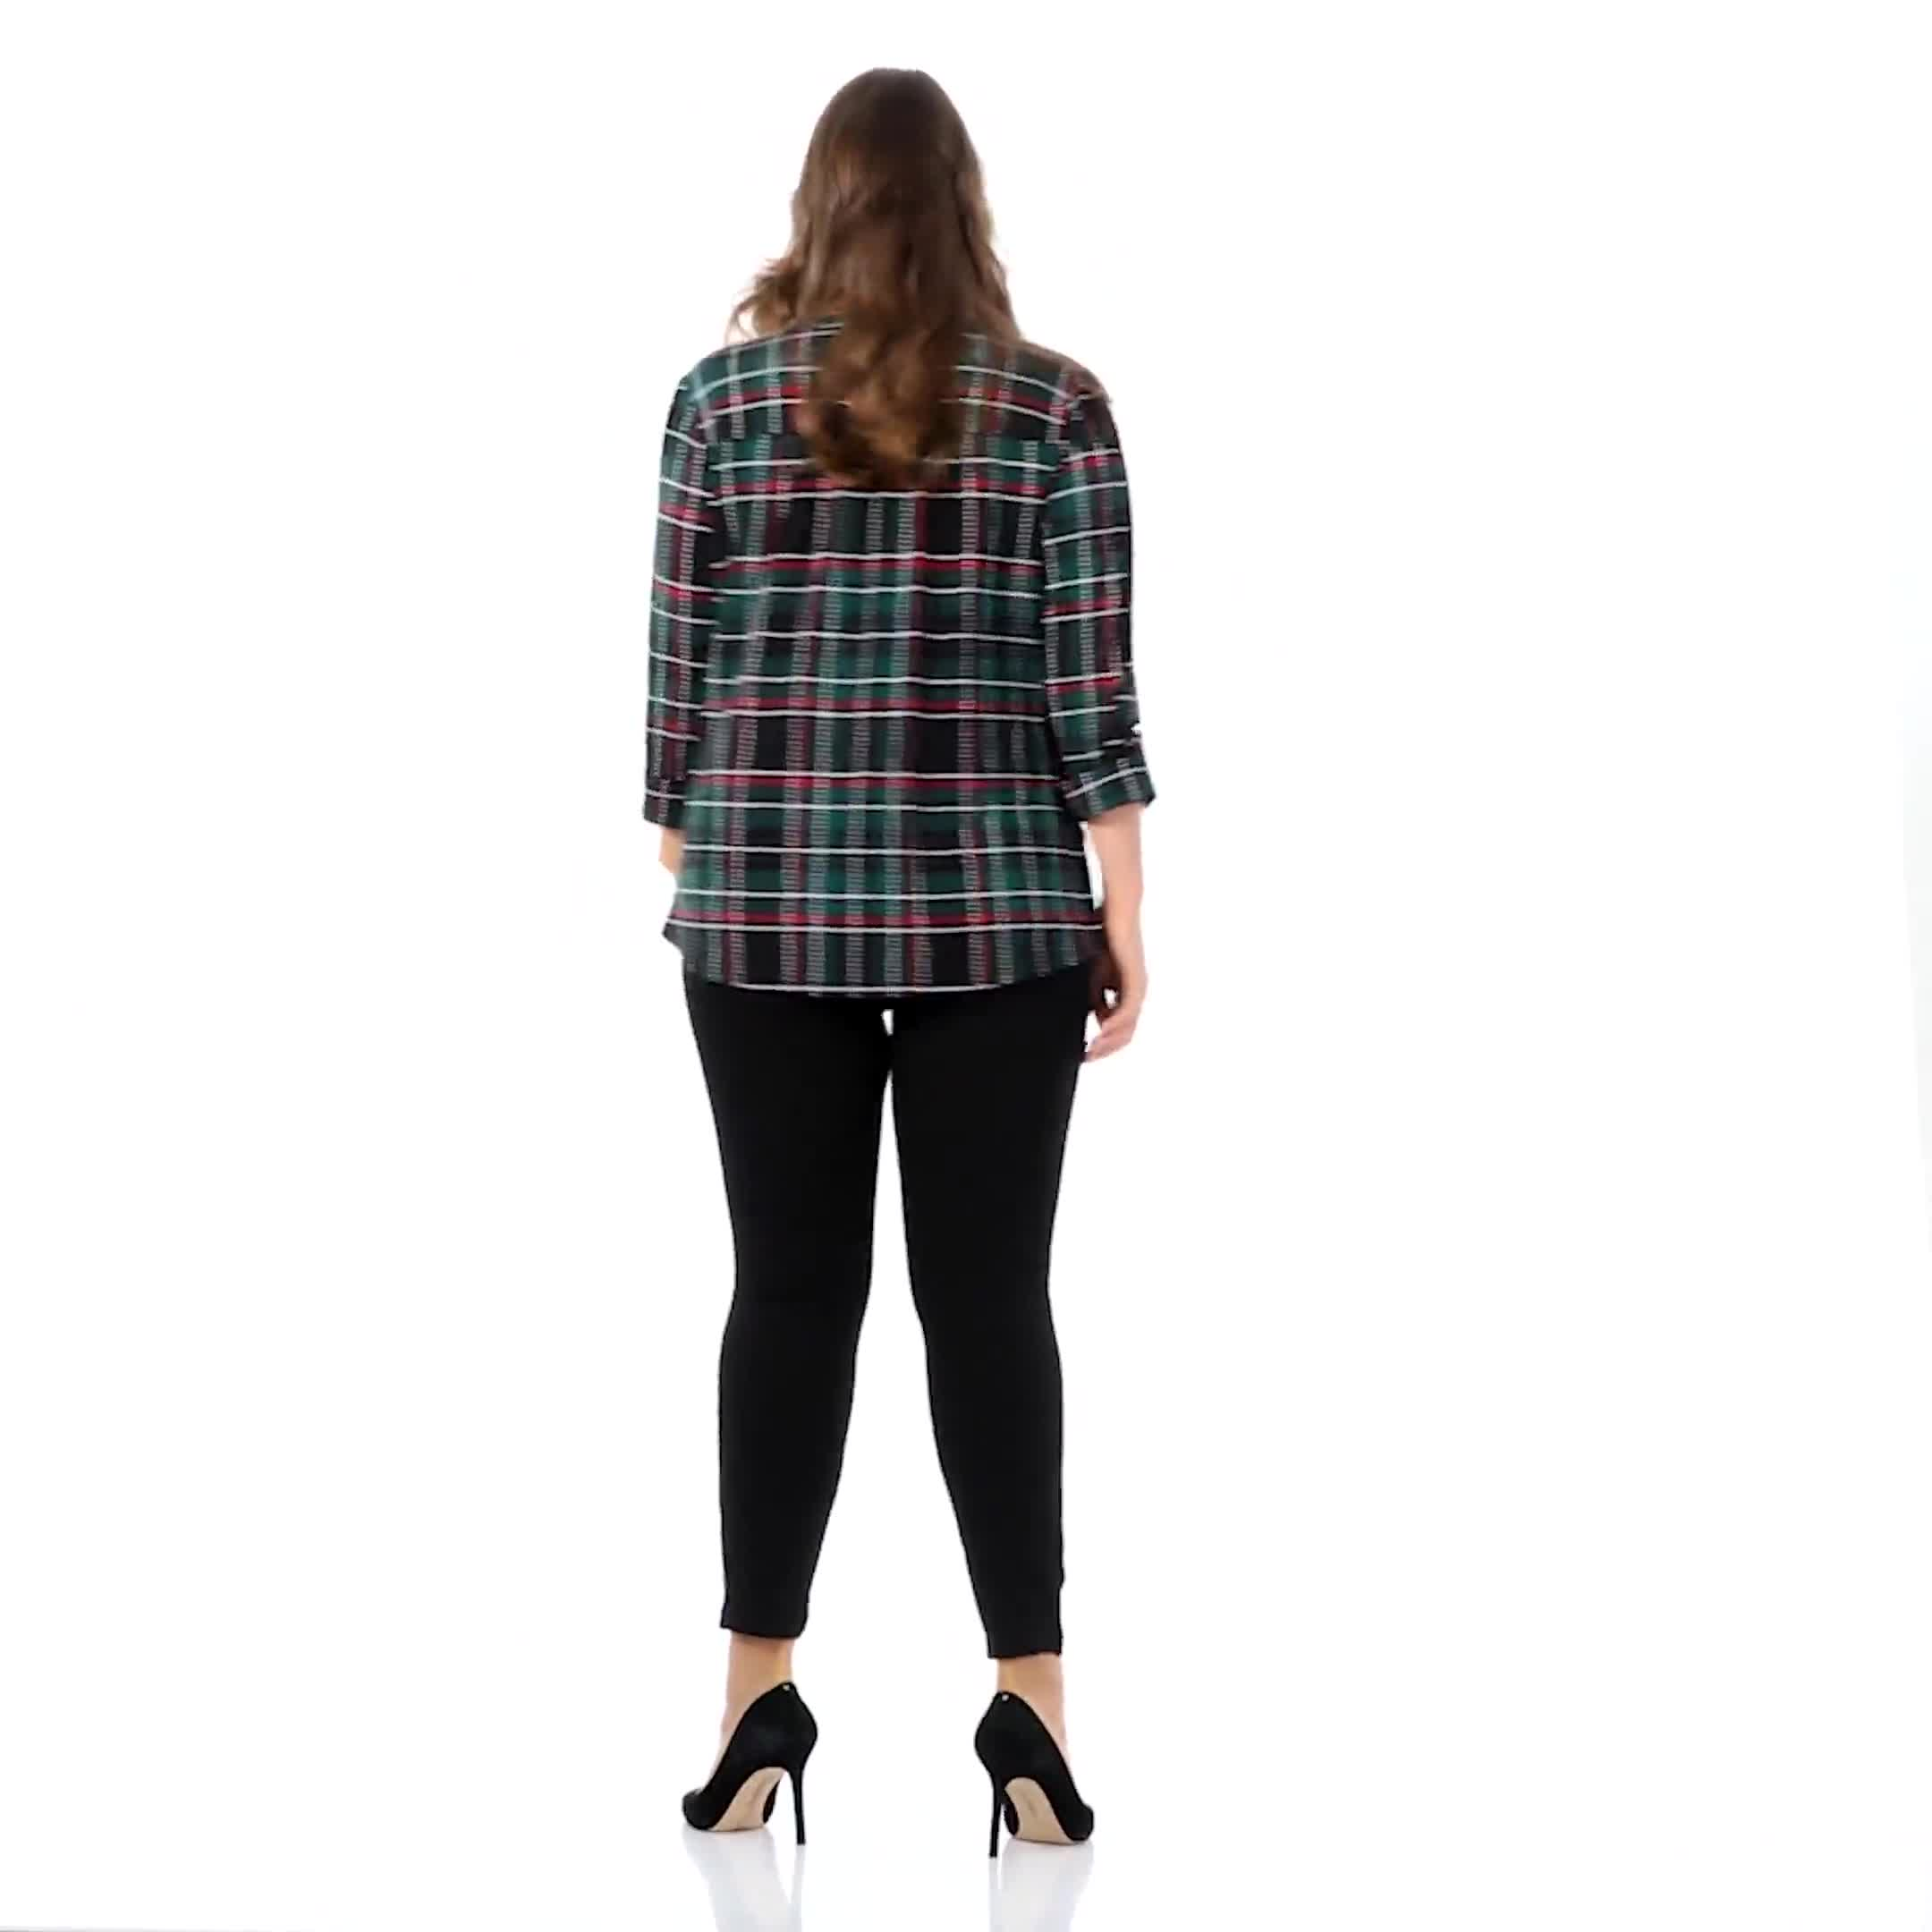 Roz & Ali Green Tartan Pintuck Plaid Popover  - Plus - Video